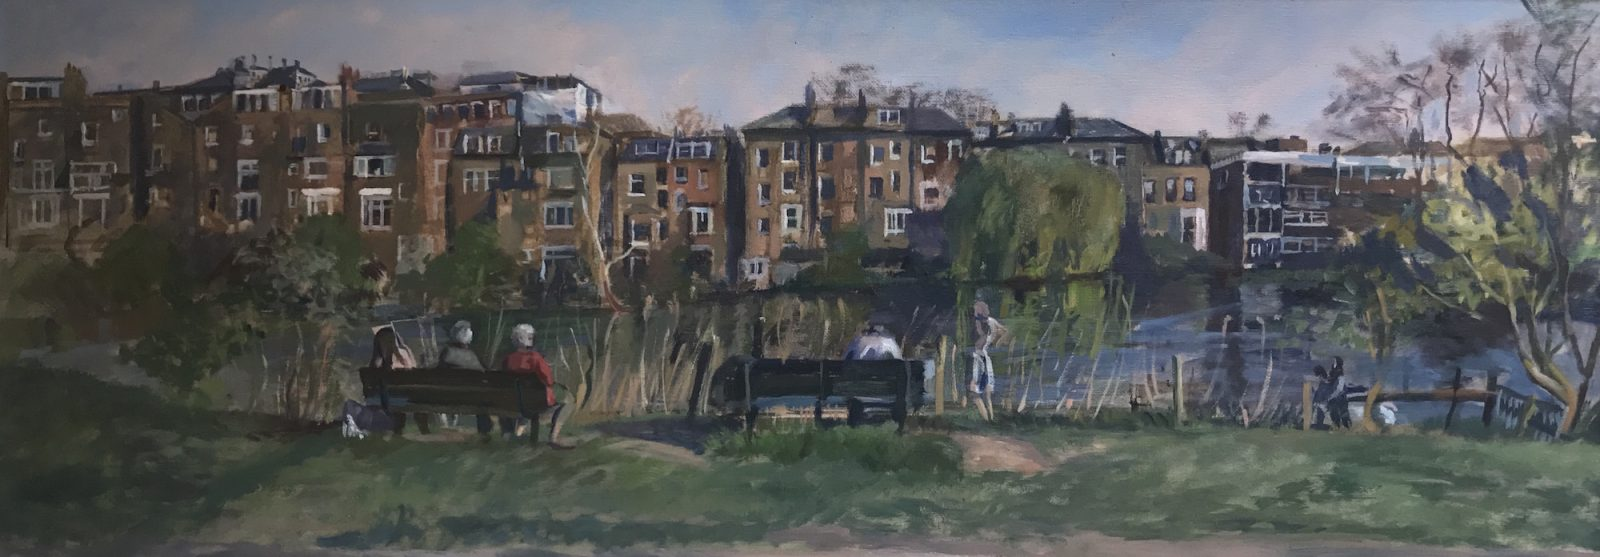 "Hampstead Pond on an Overcast Day 16"" X 20 SOLD"